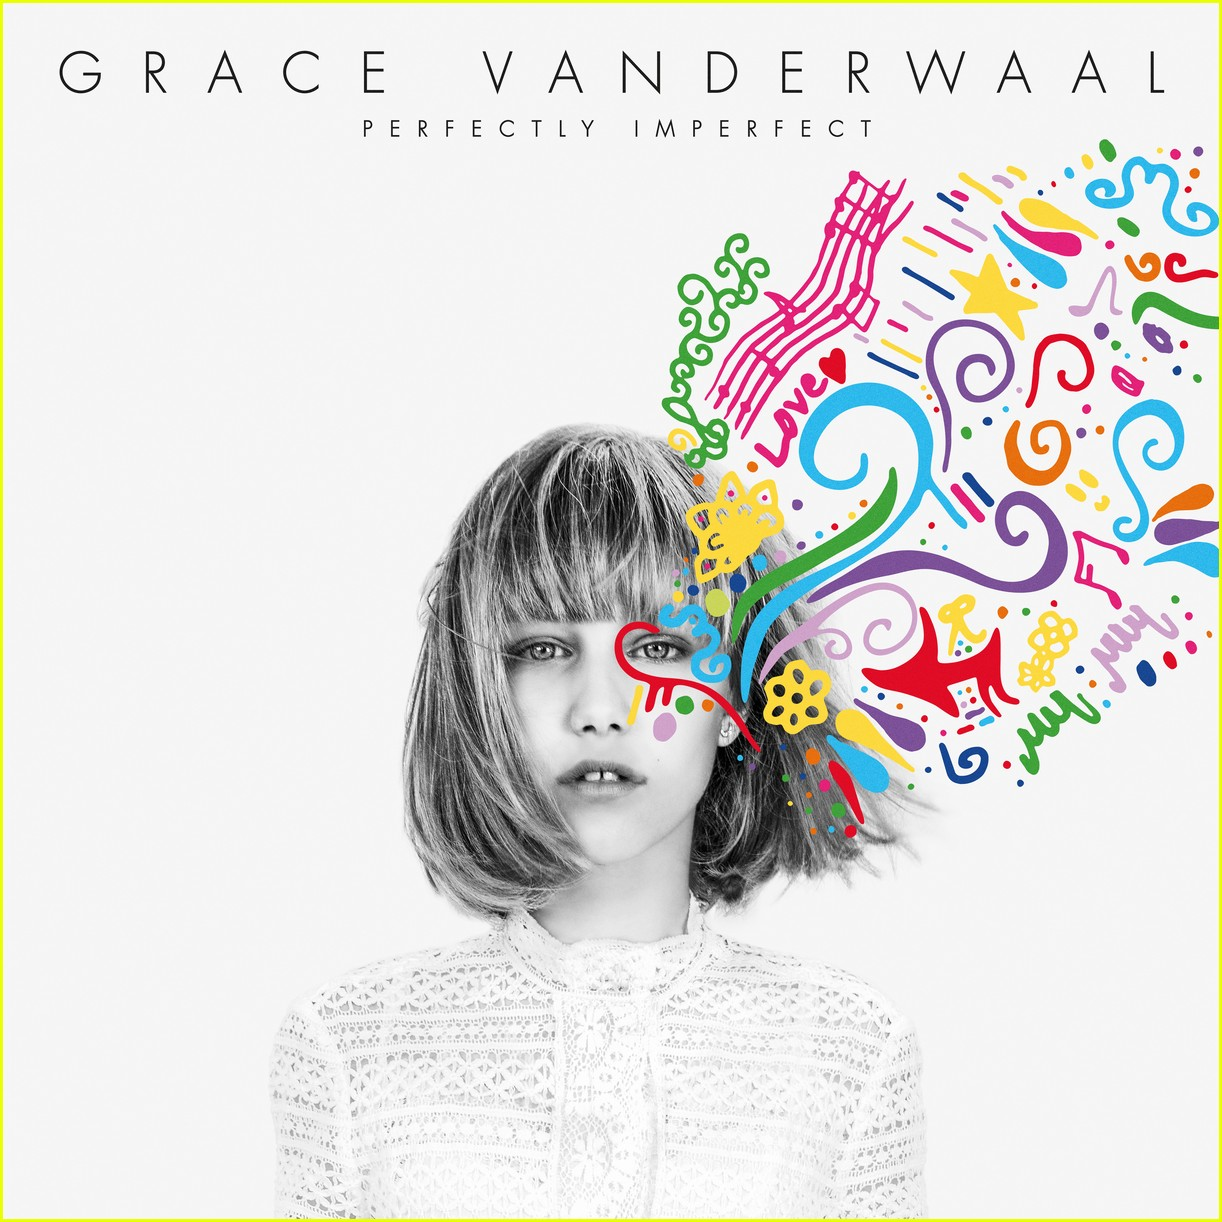 Grace vanderwaal perfectly imperfect ep stream amp download listen